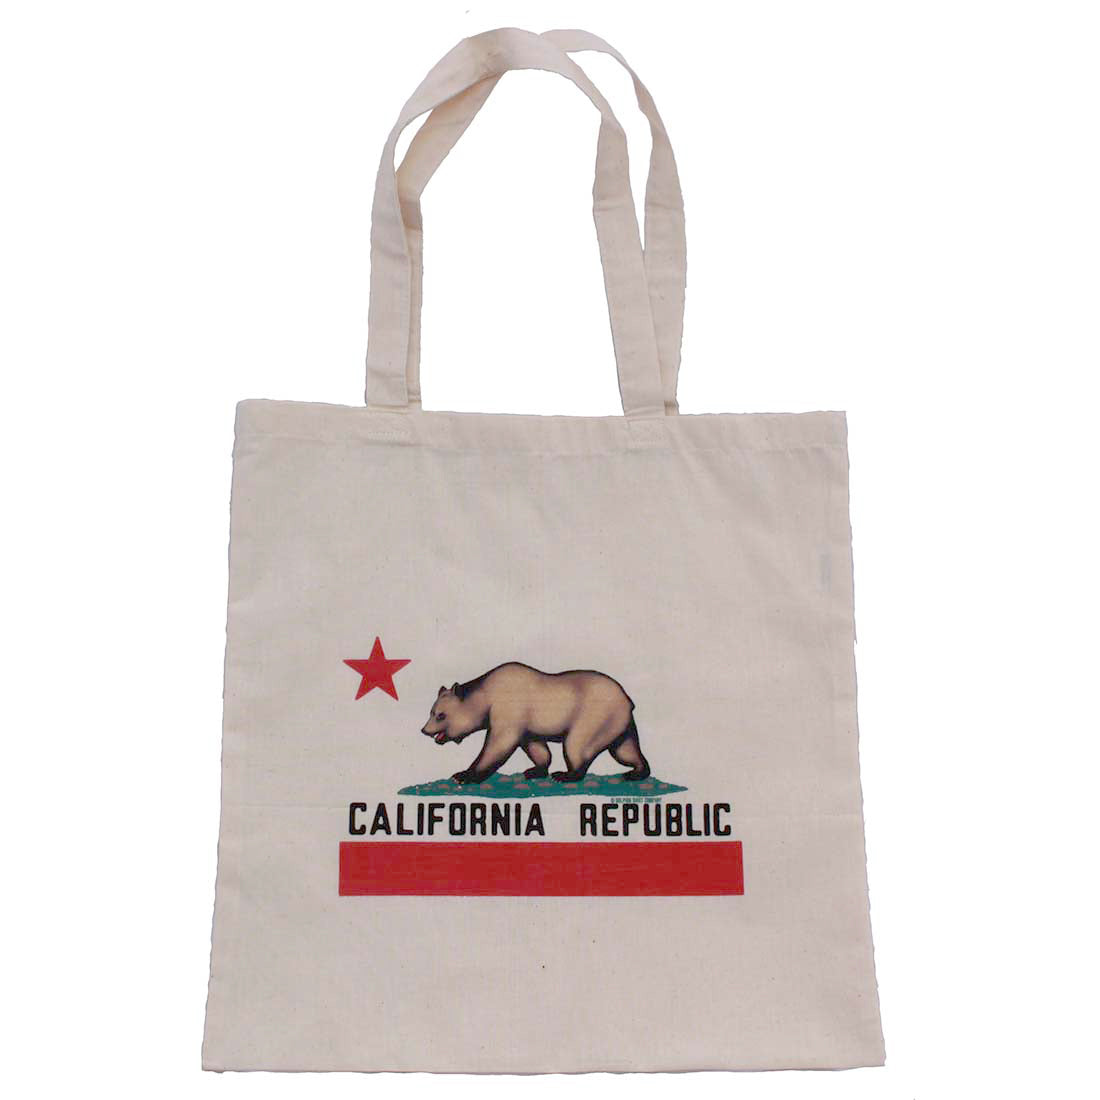 California Republic Reusable Canvas Tote Bag